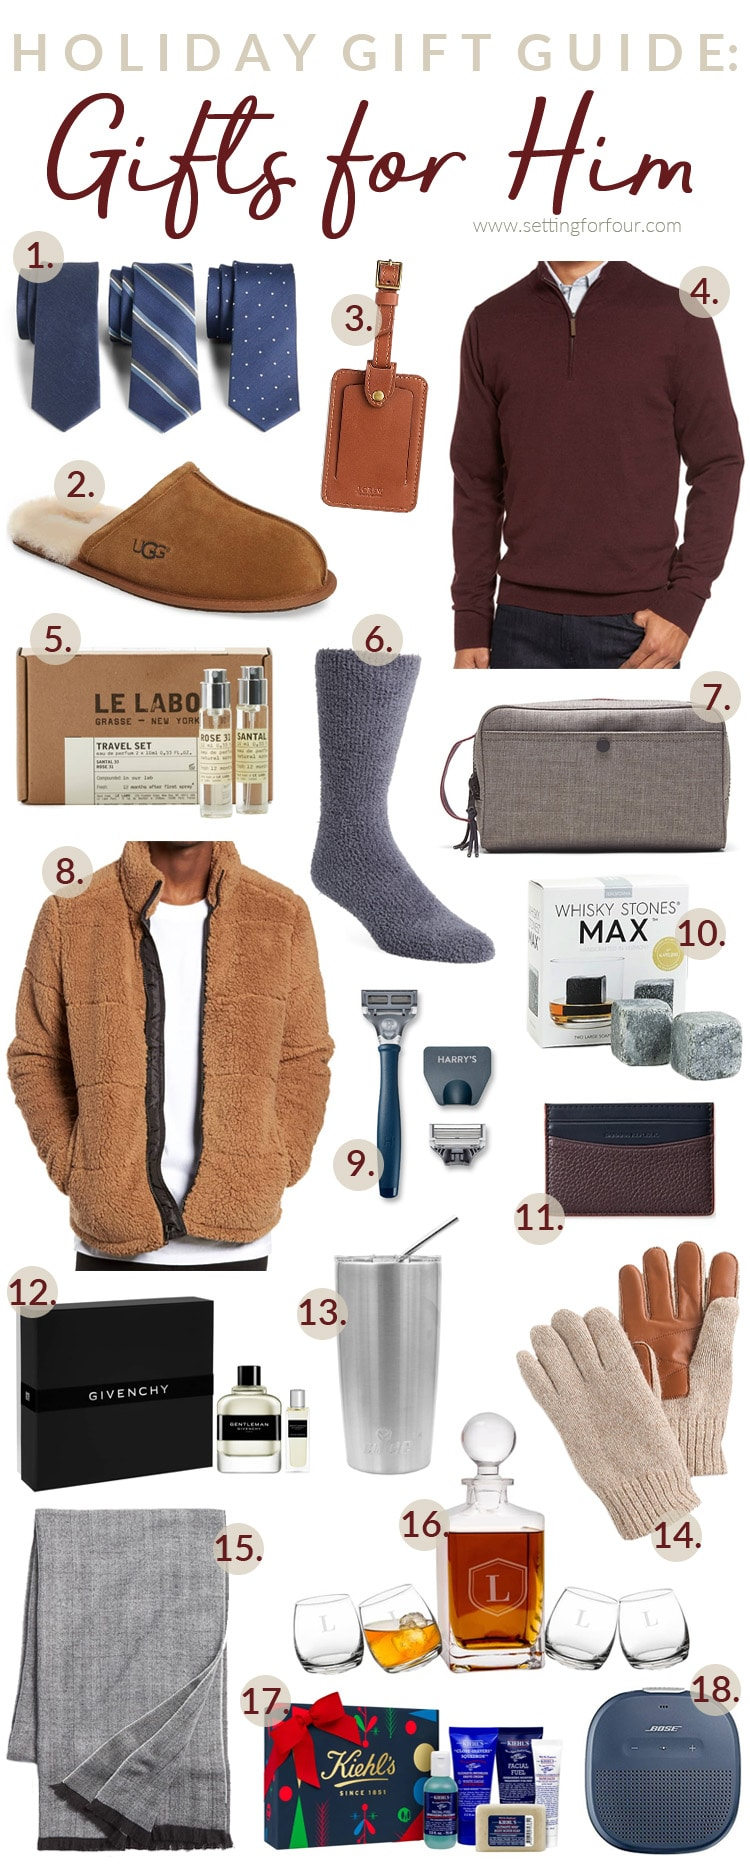 Holiday Gift Guide - Gifts for Him! #holiday #gifts #giftguide #christmas #christmasgifts #giftideas giftideasformen